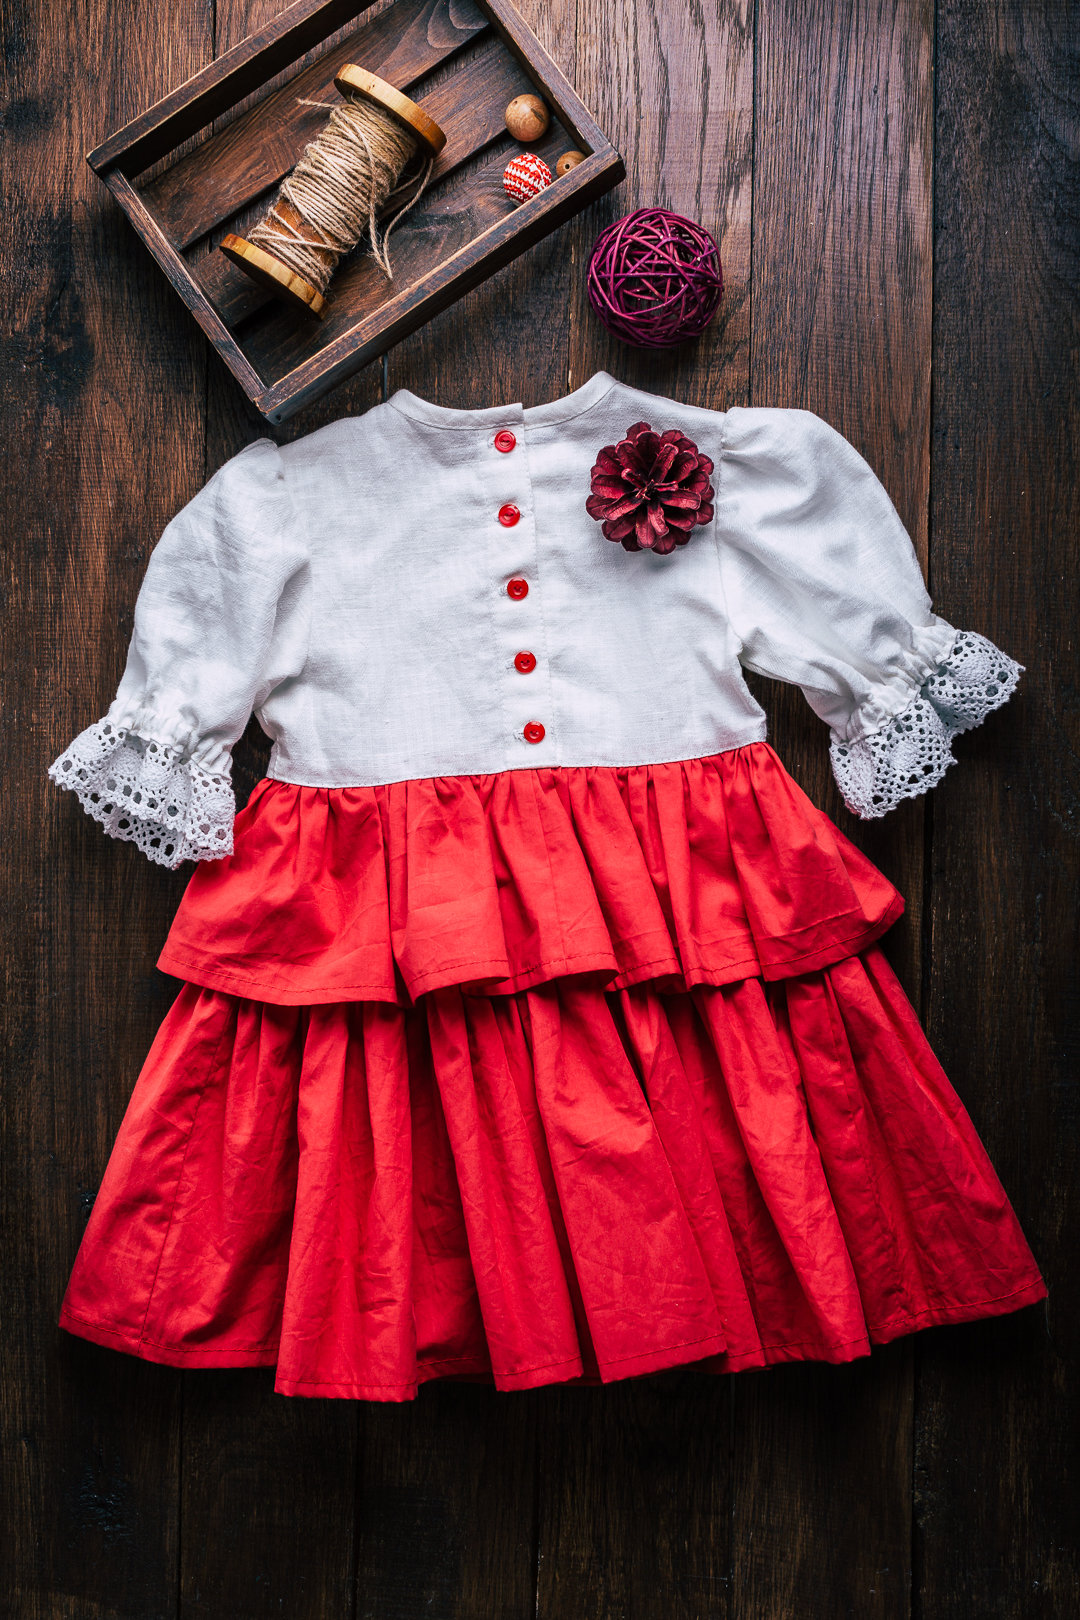 slavic linen dress for toddler girl